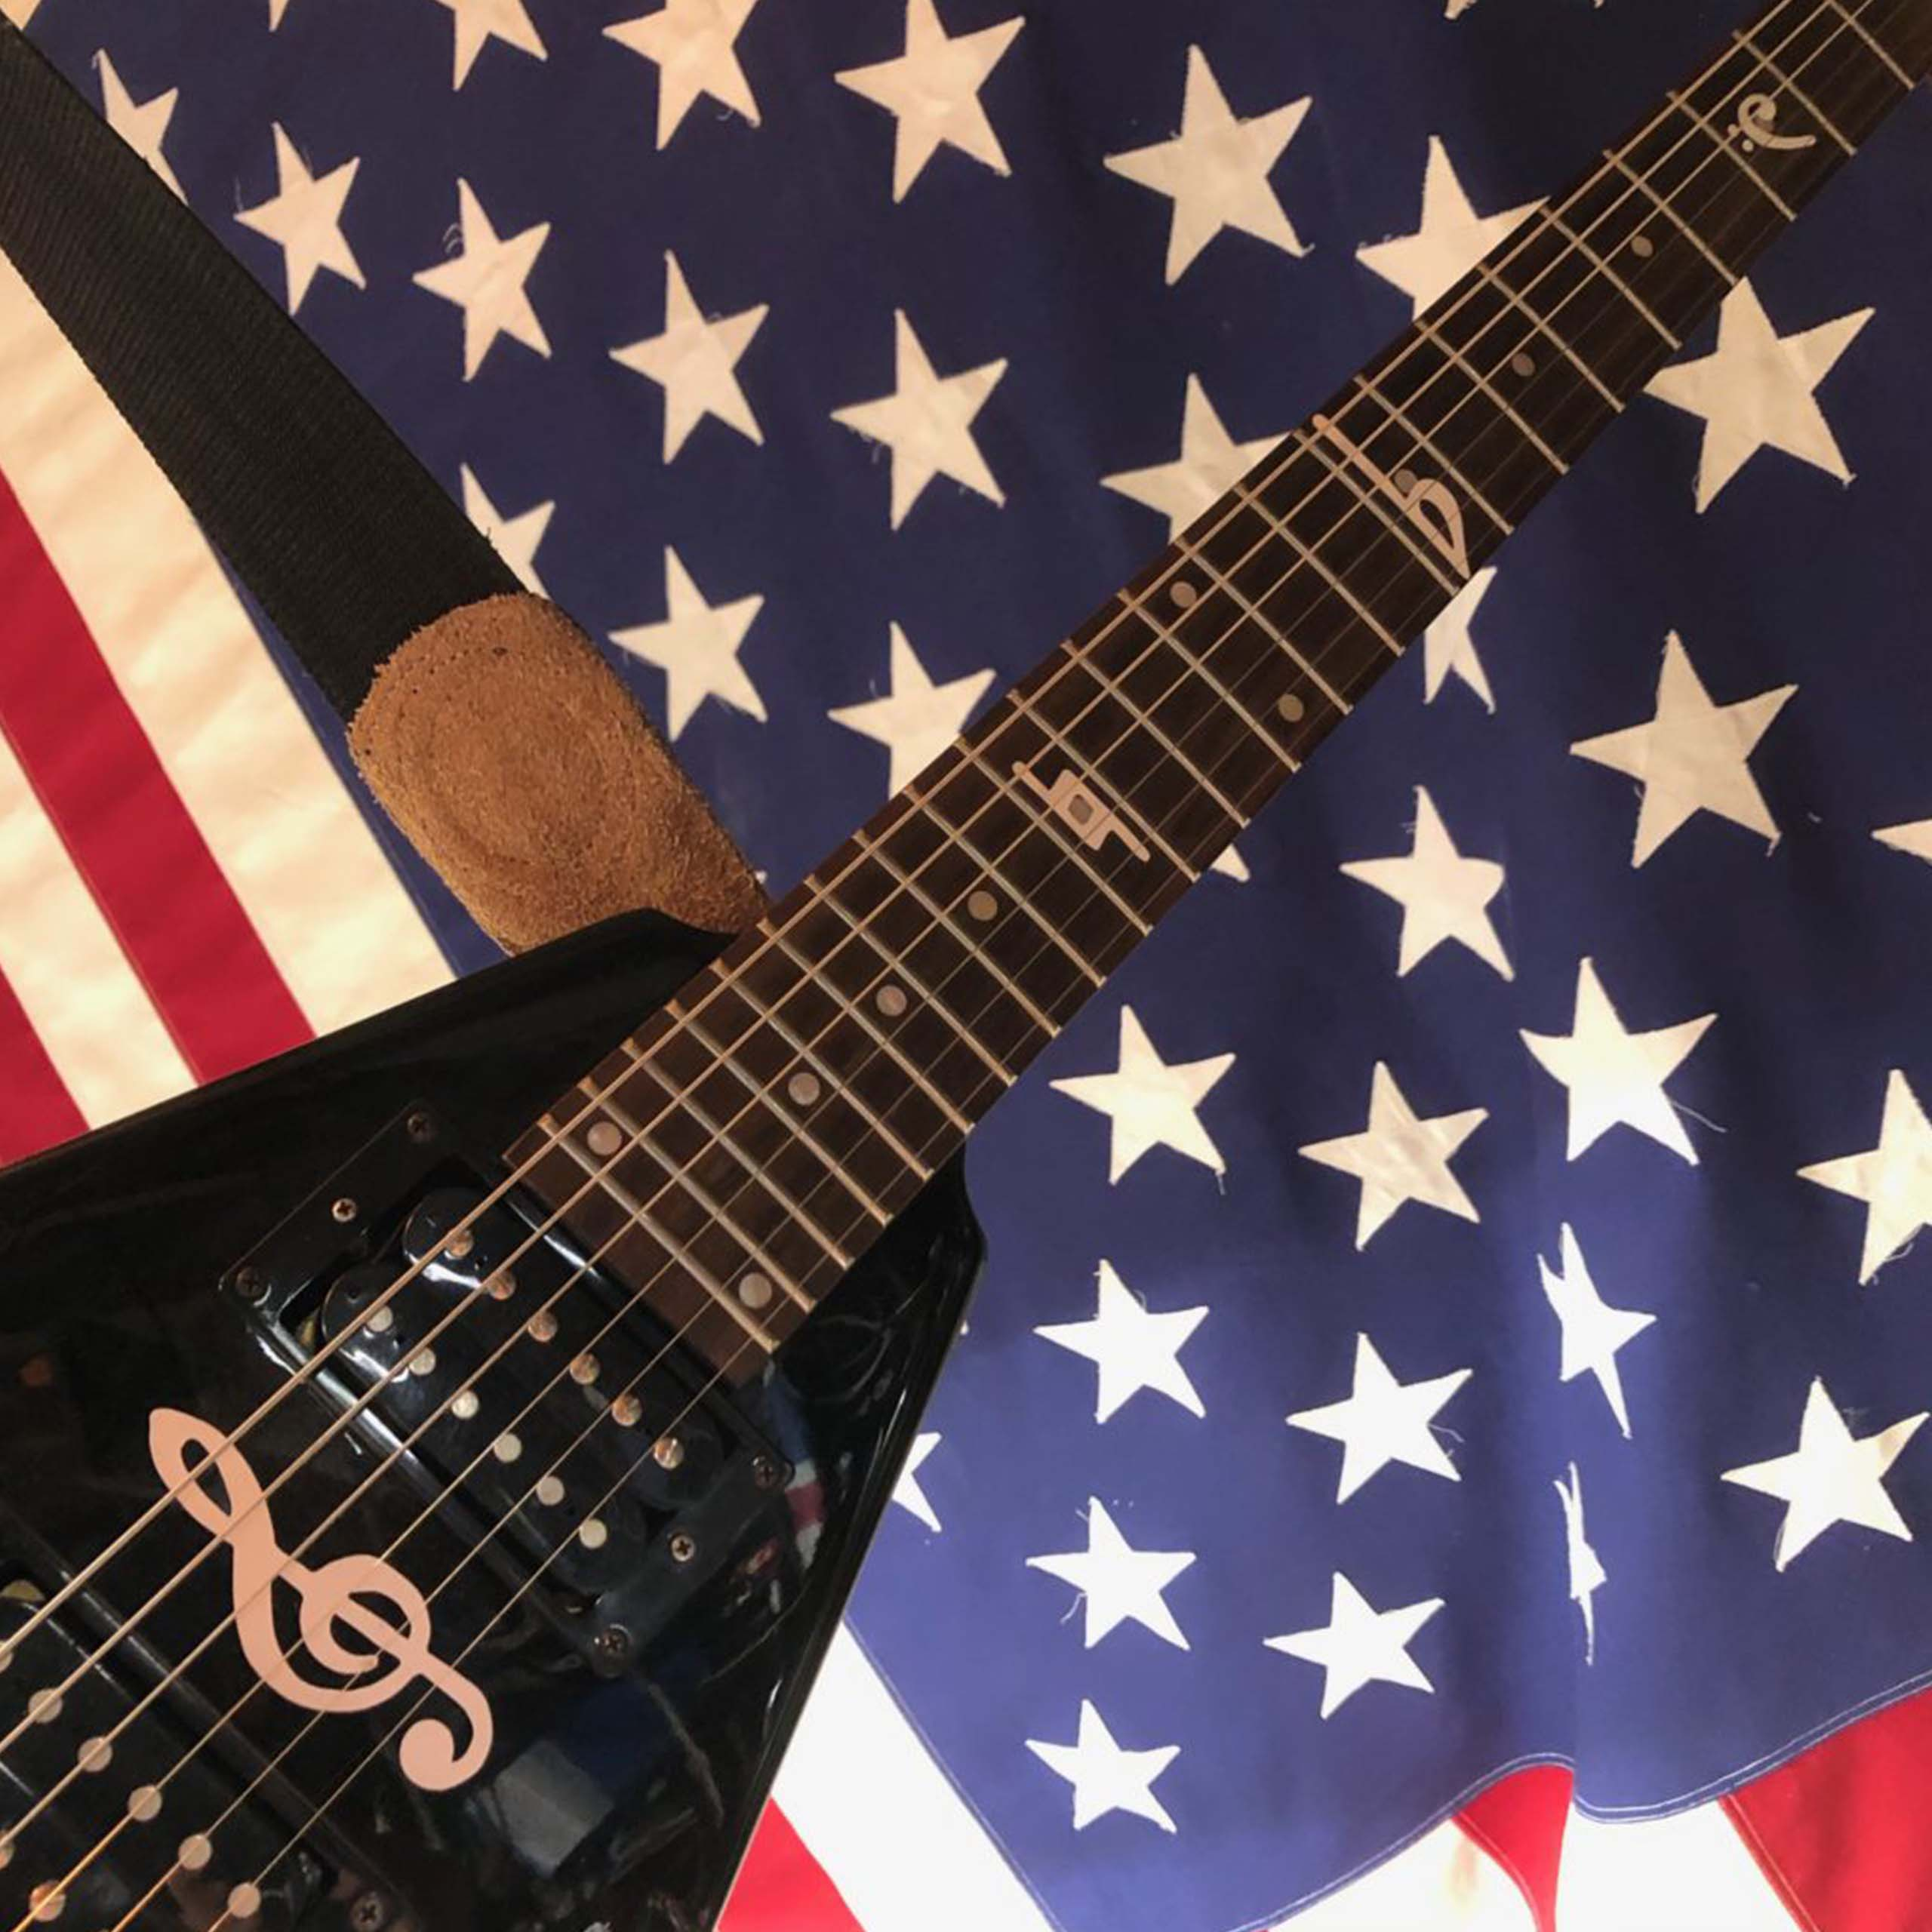 Guitar and American Flag